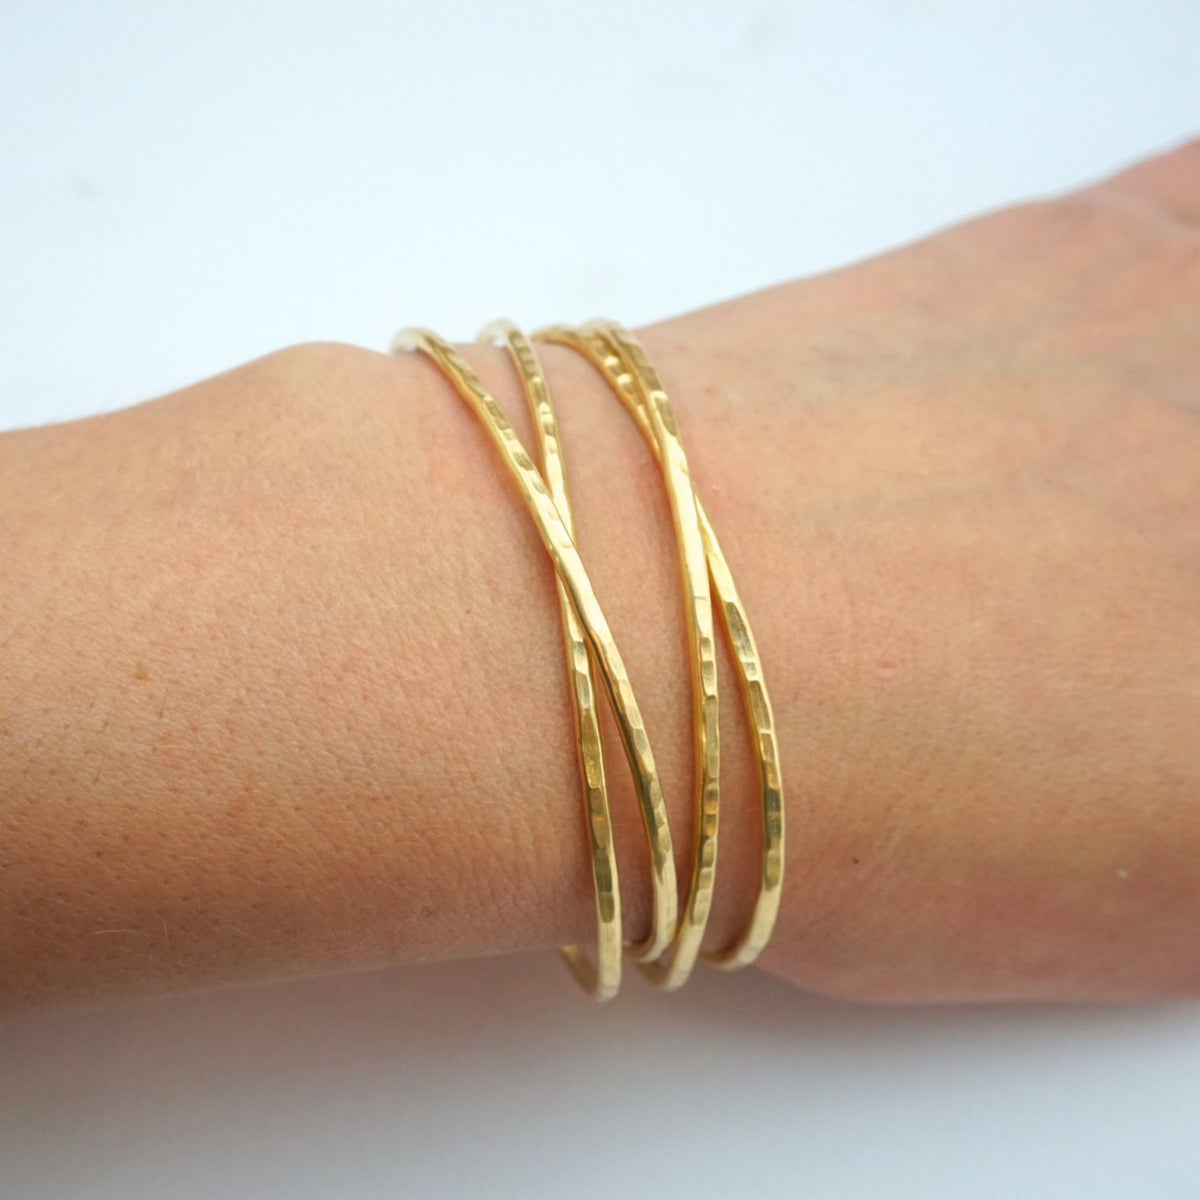 Classic Stacking Bracelets! Affordable Hand-Made Adjustable Boho Bangle Bracelets - 0079 - Virginia Wynne Designs